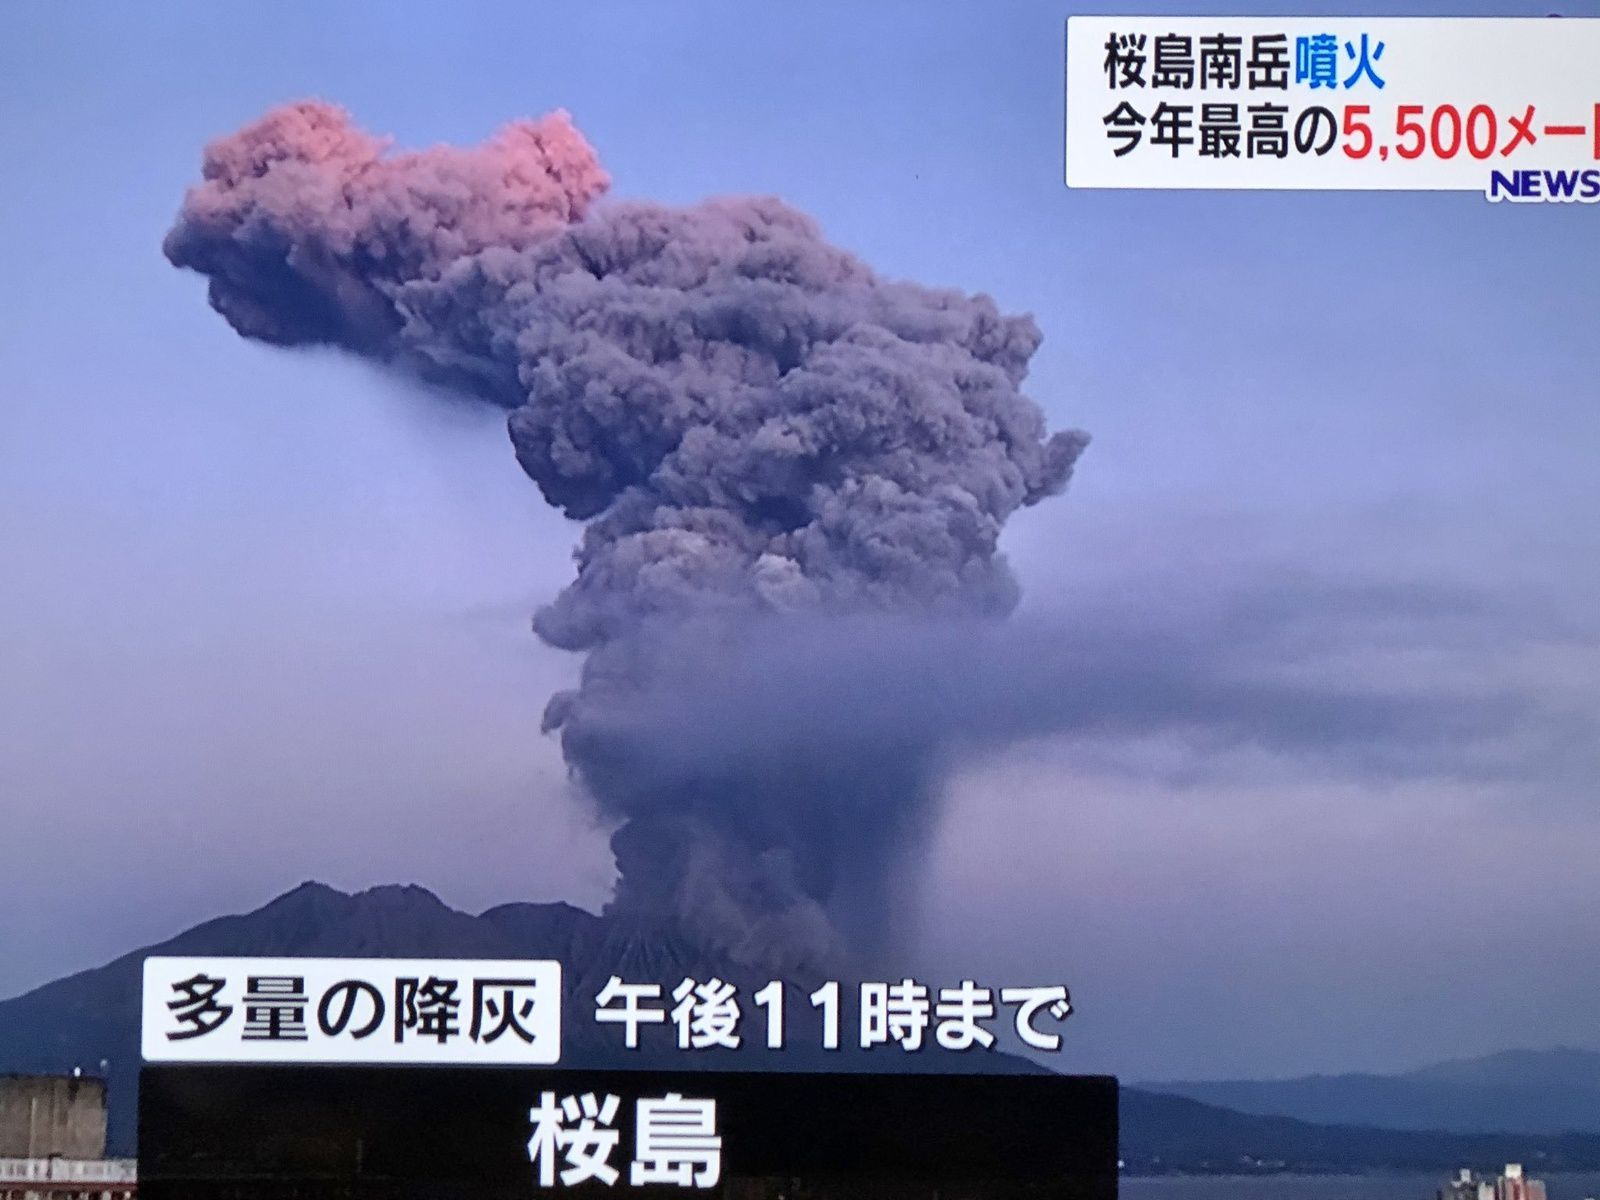 Sakurajima - eruptive episode of the 08.11.2019; the plume has grown up to 5,500 m. above the crater